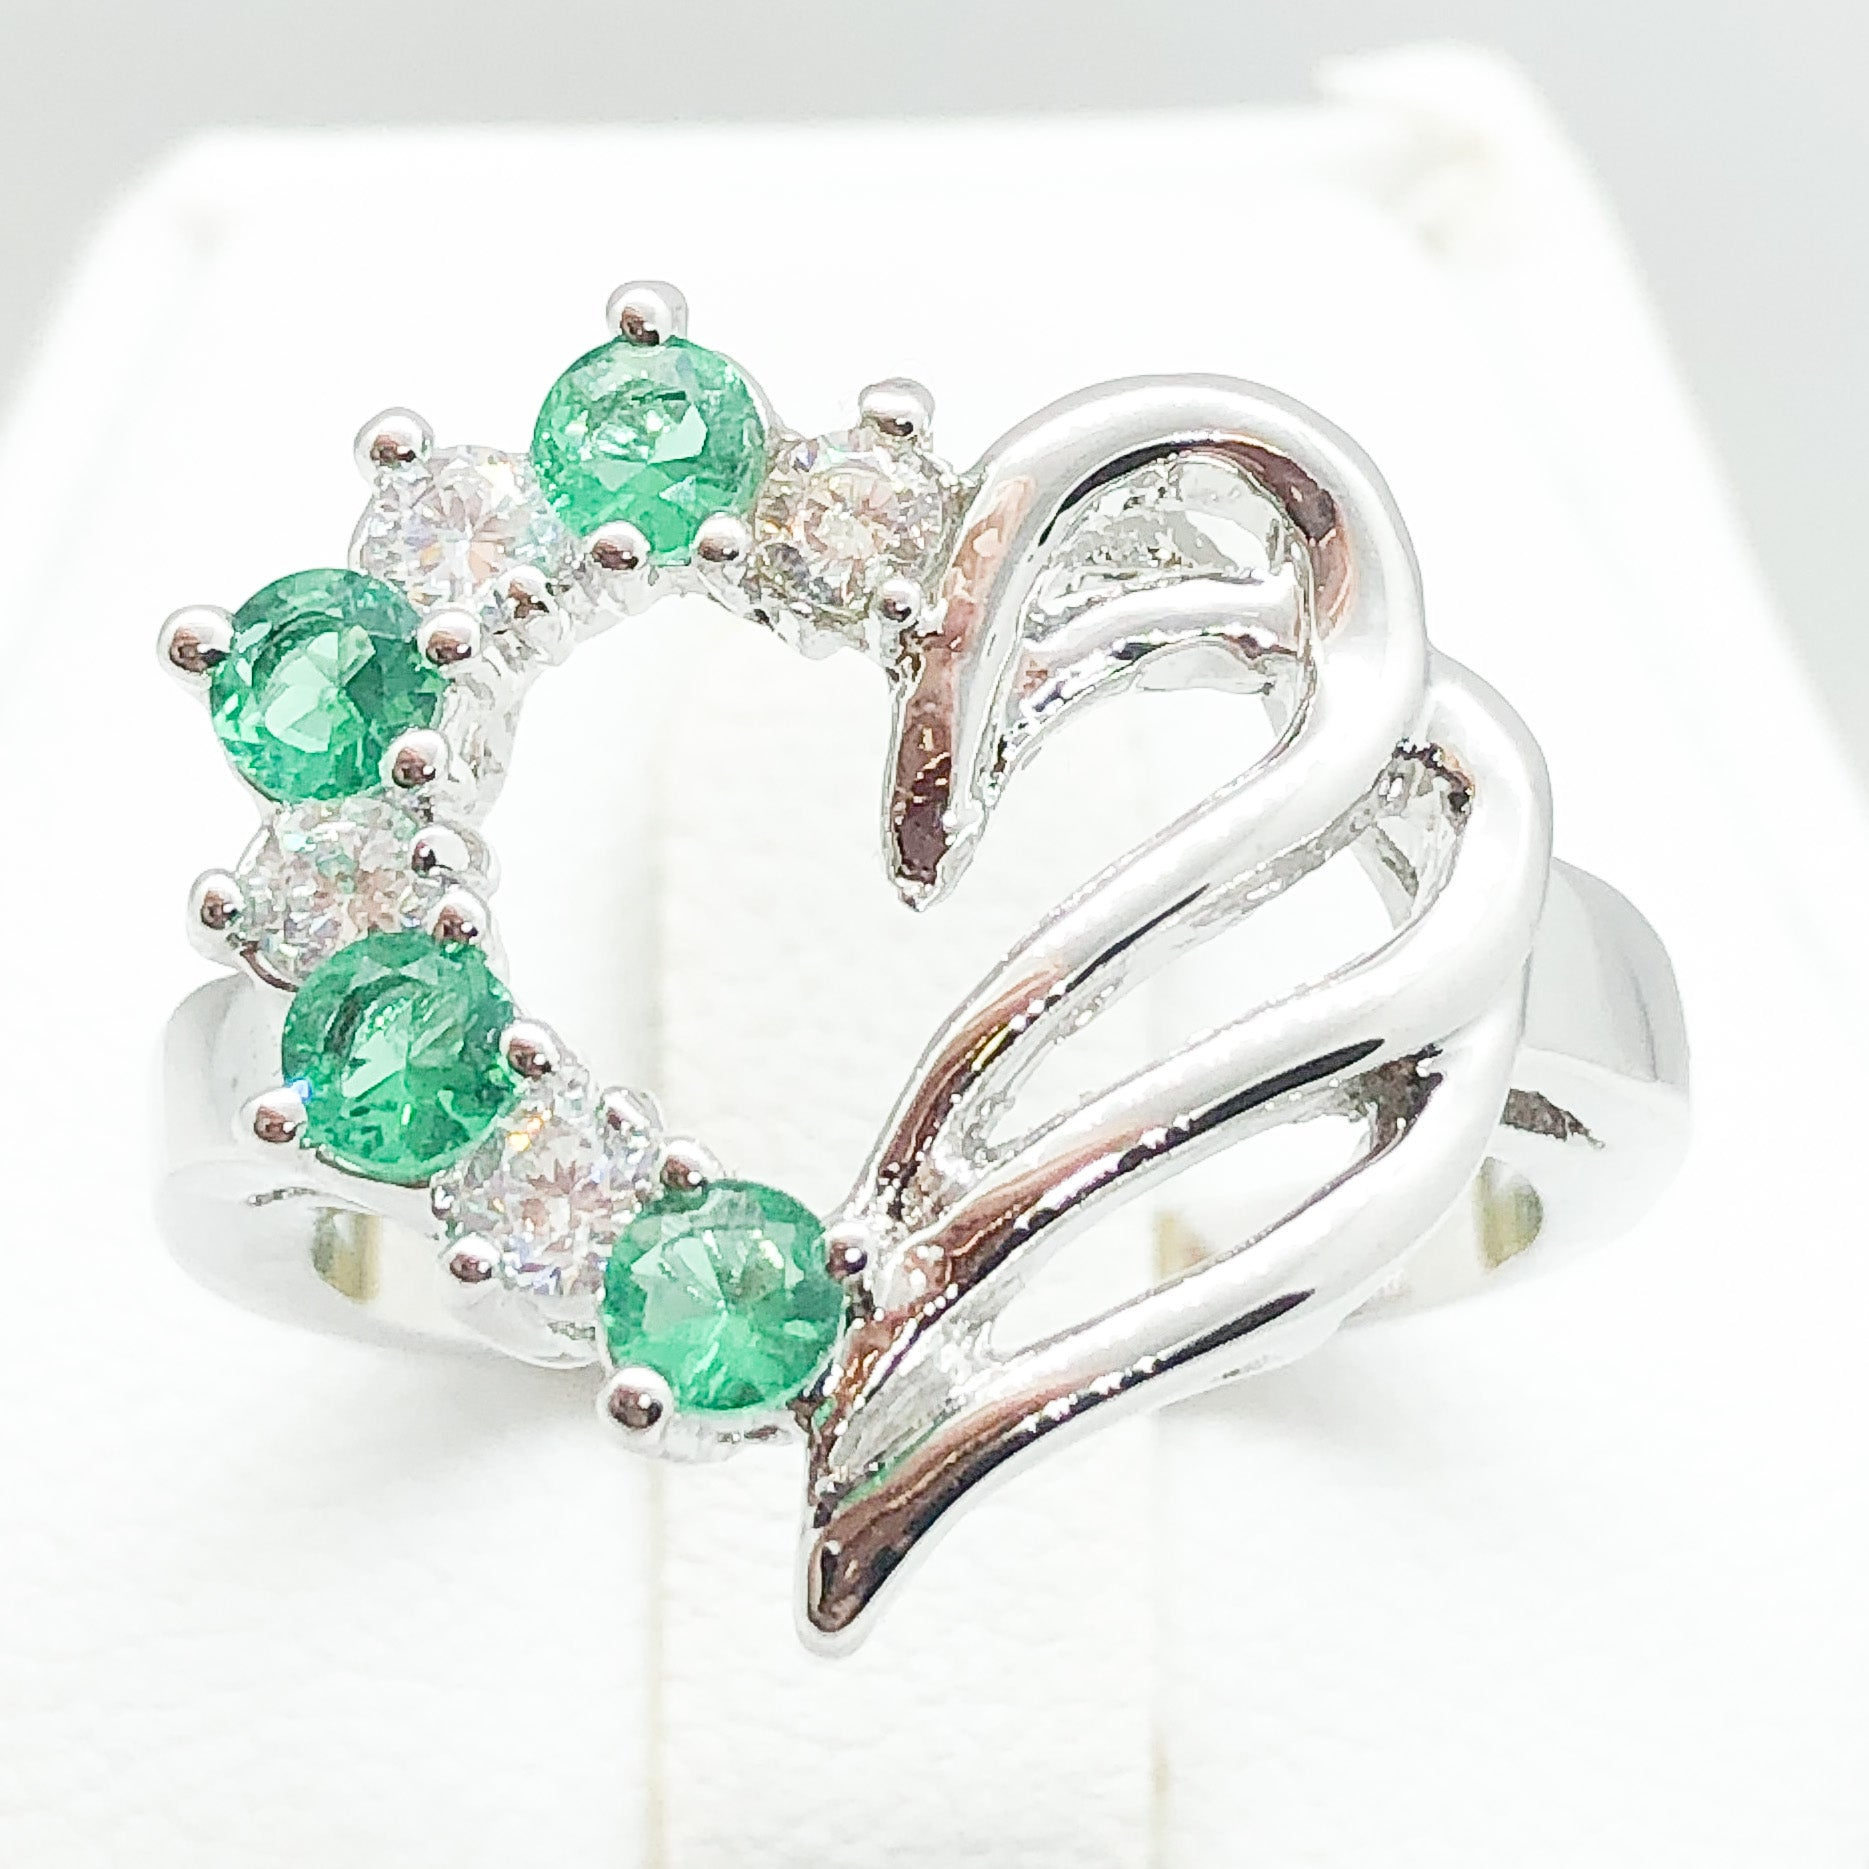 ID:R2240 Women Fashion Jewelry 18K White Gold GF Unique Heart Design Green and Clear Crystal Cocktail Ring